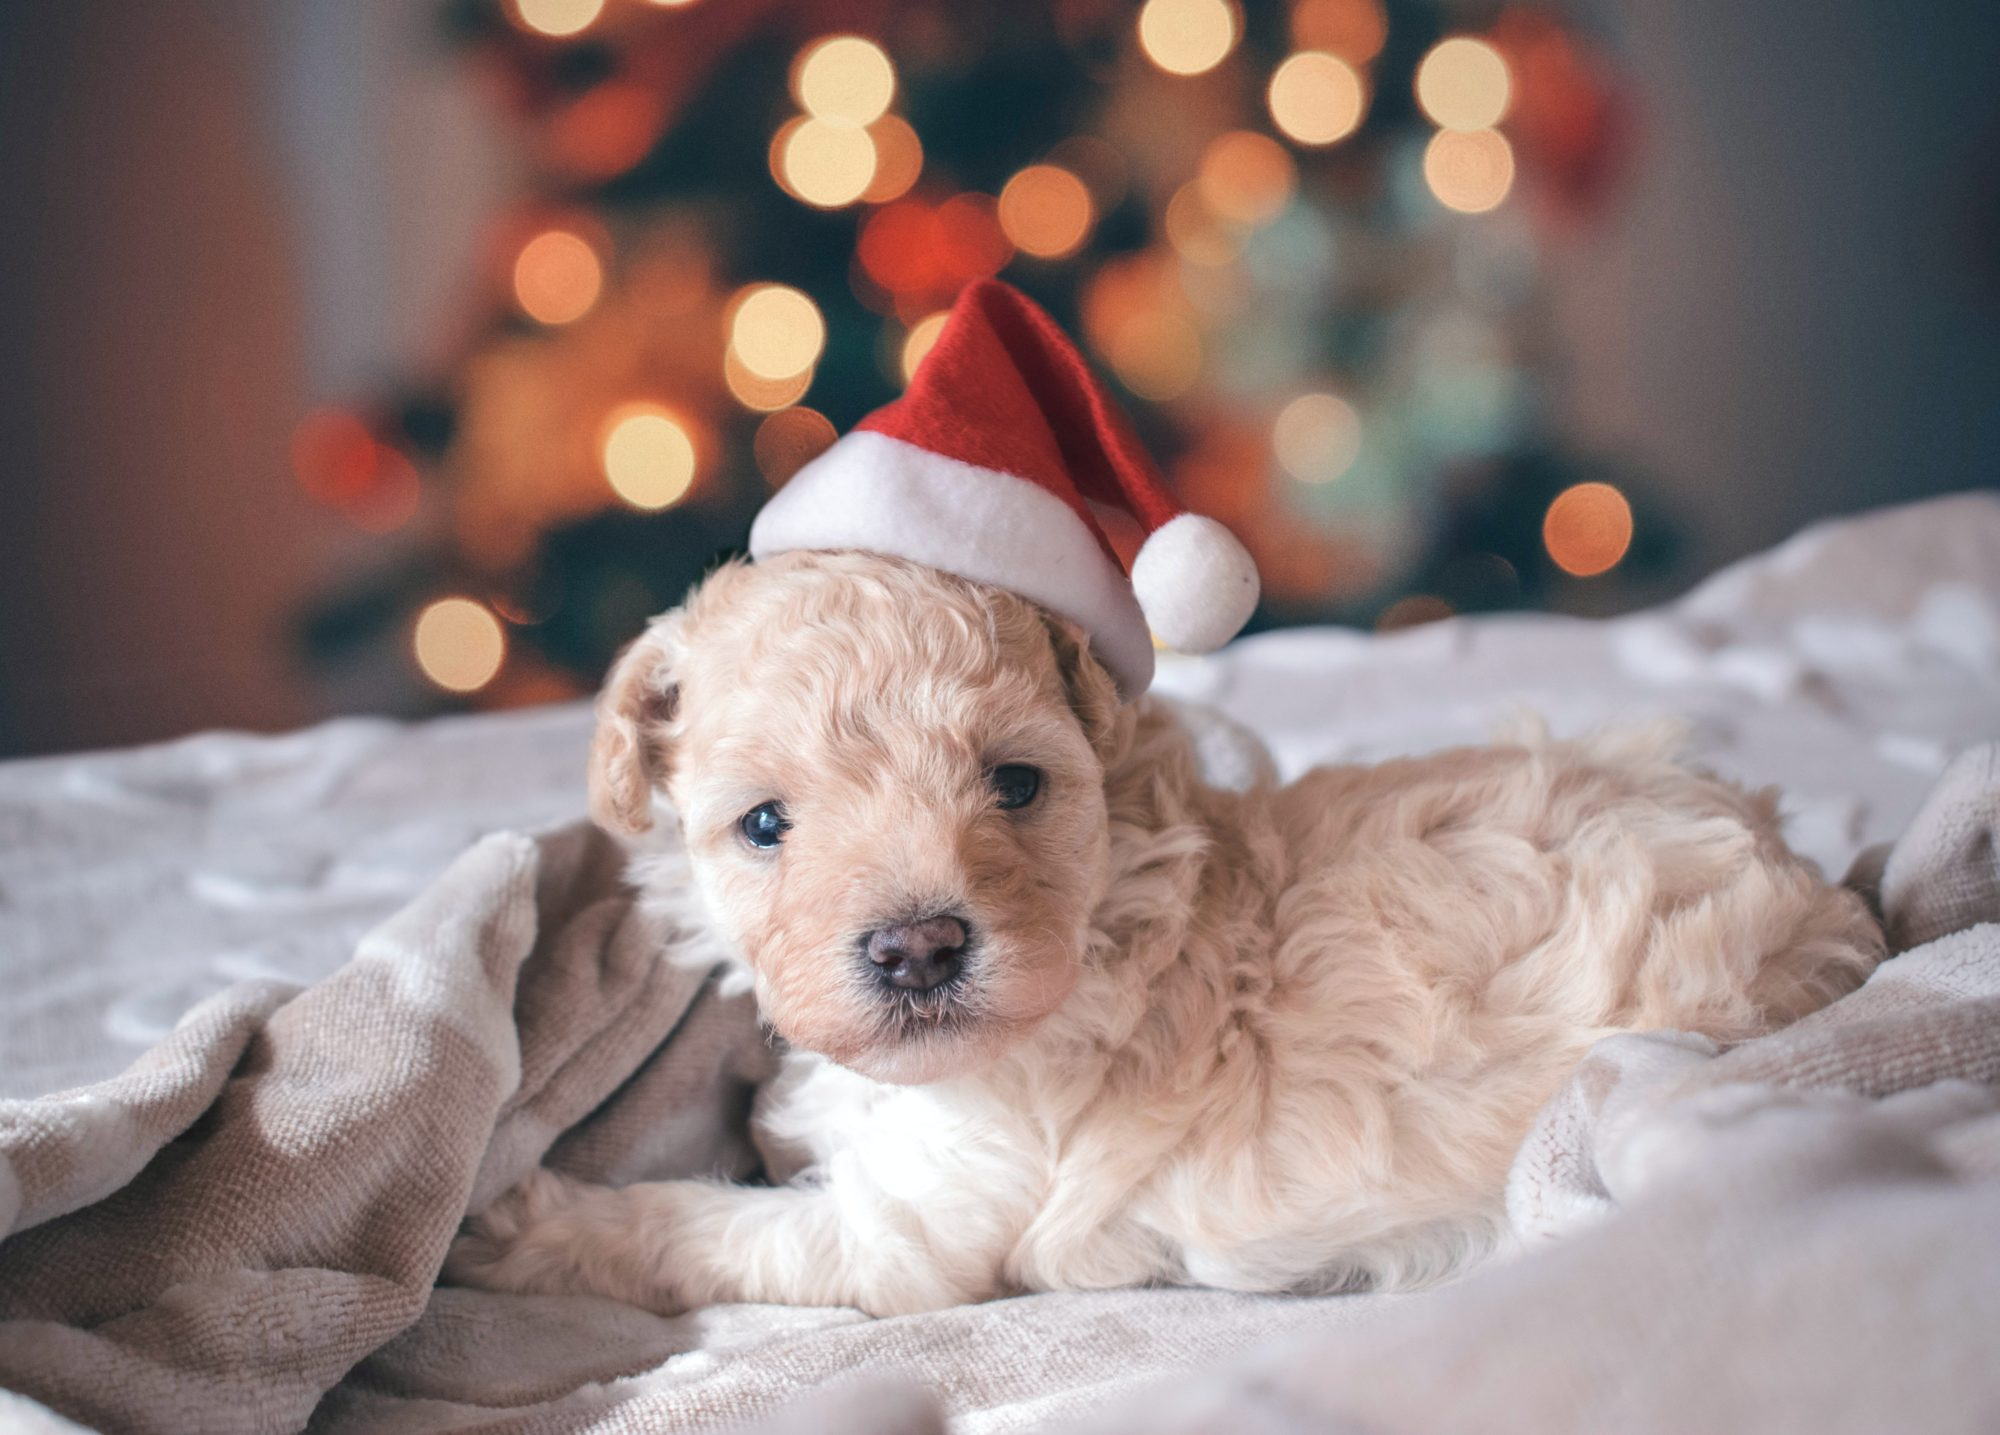 Tan puppy in Santa hat